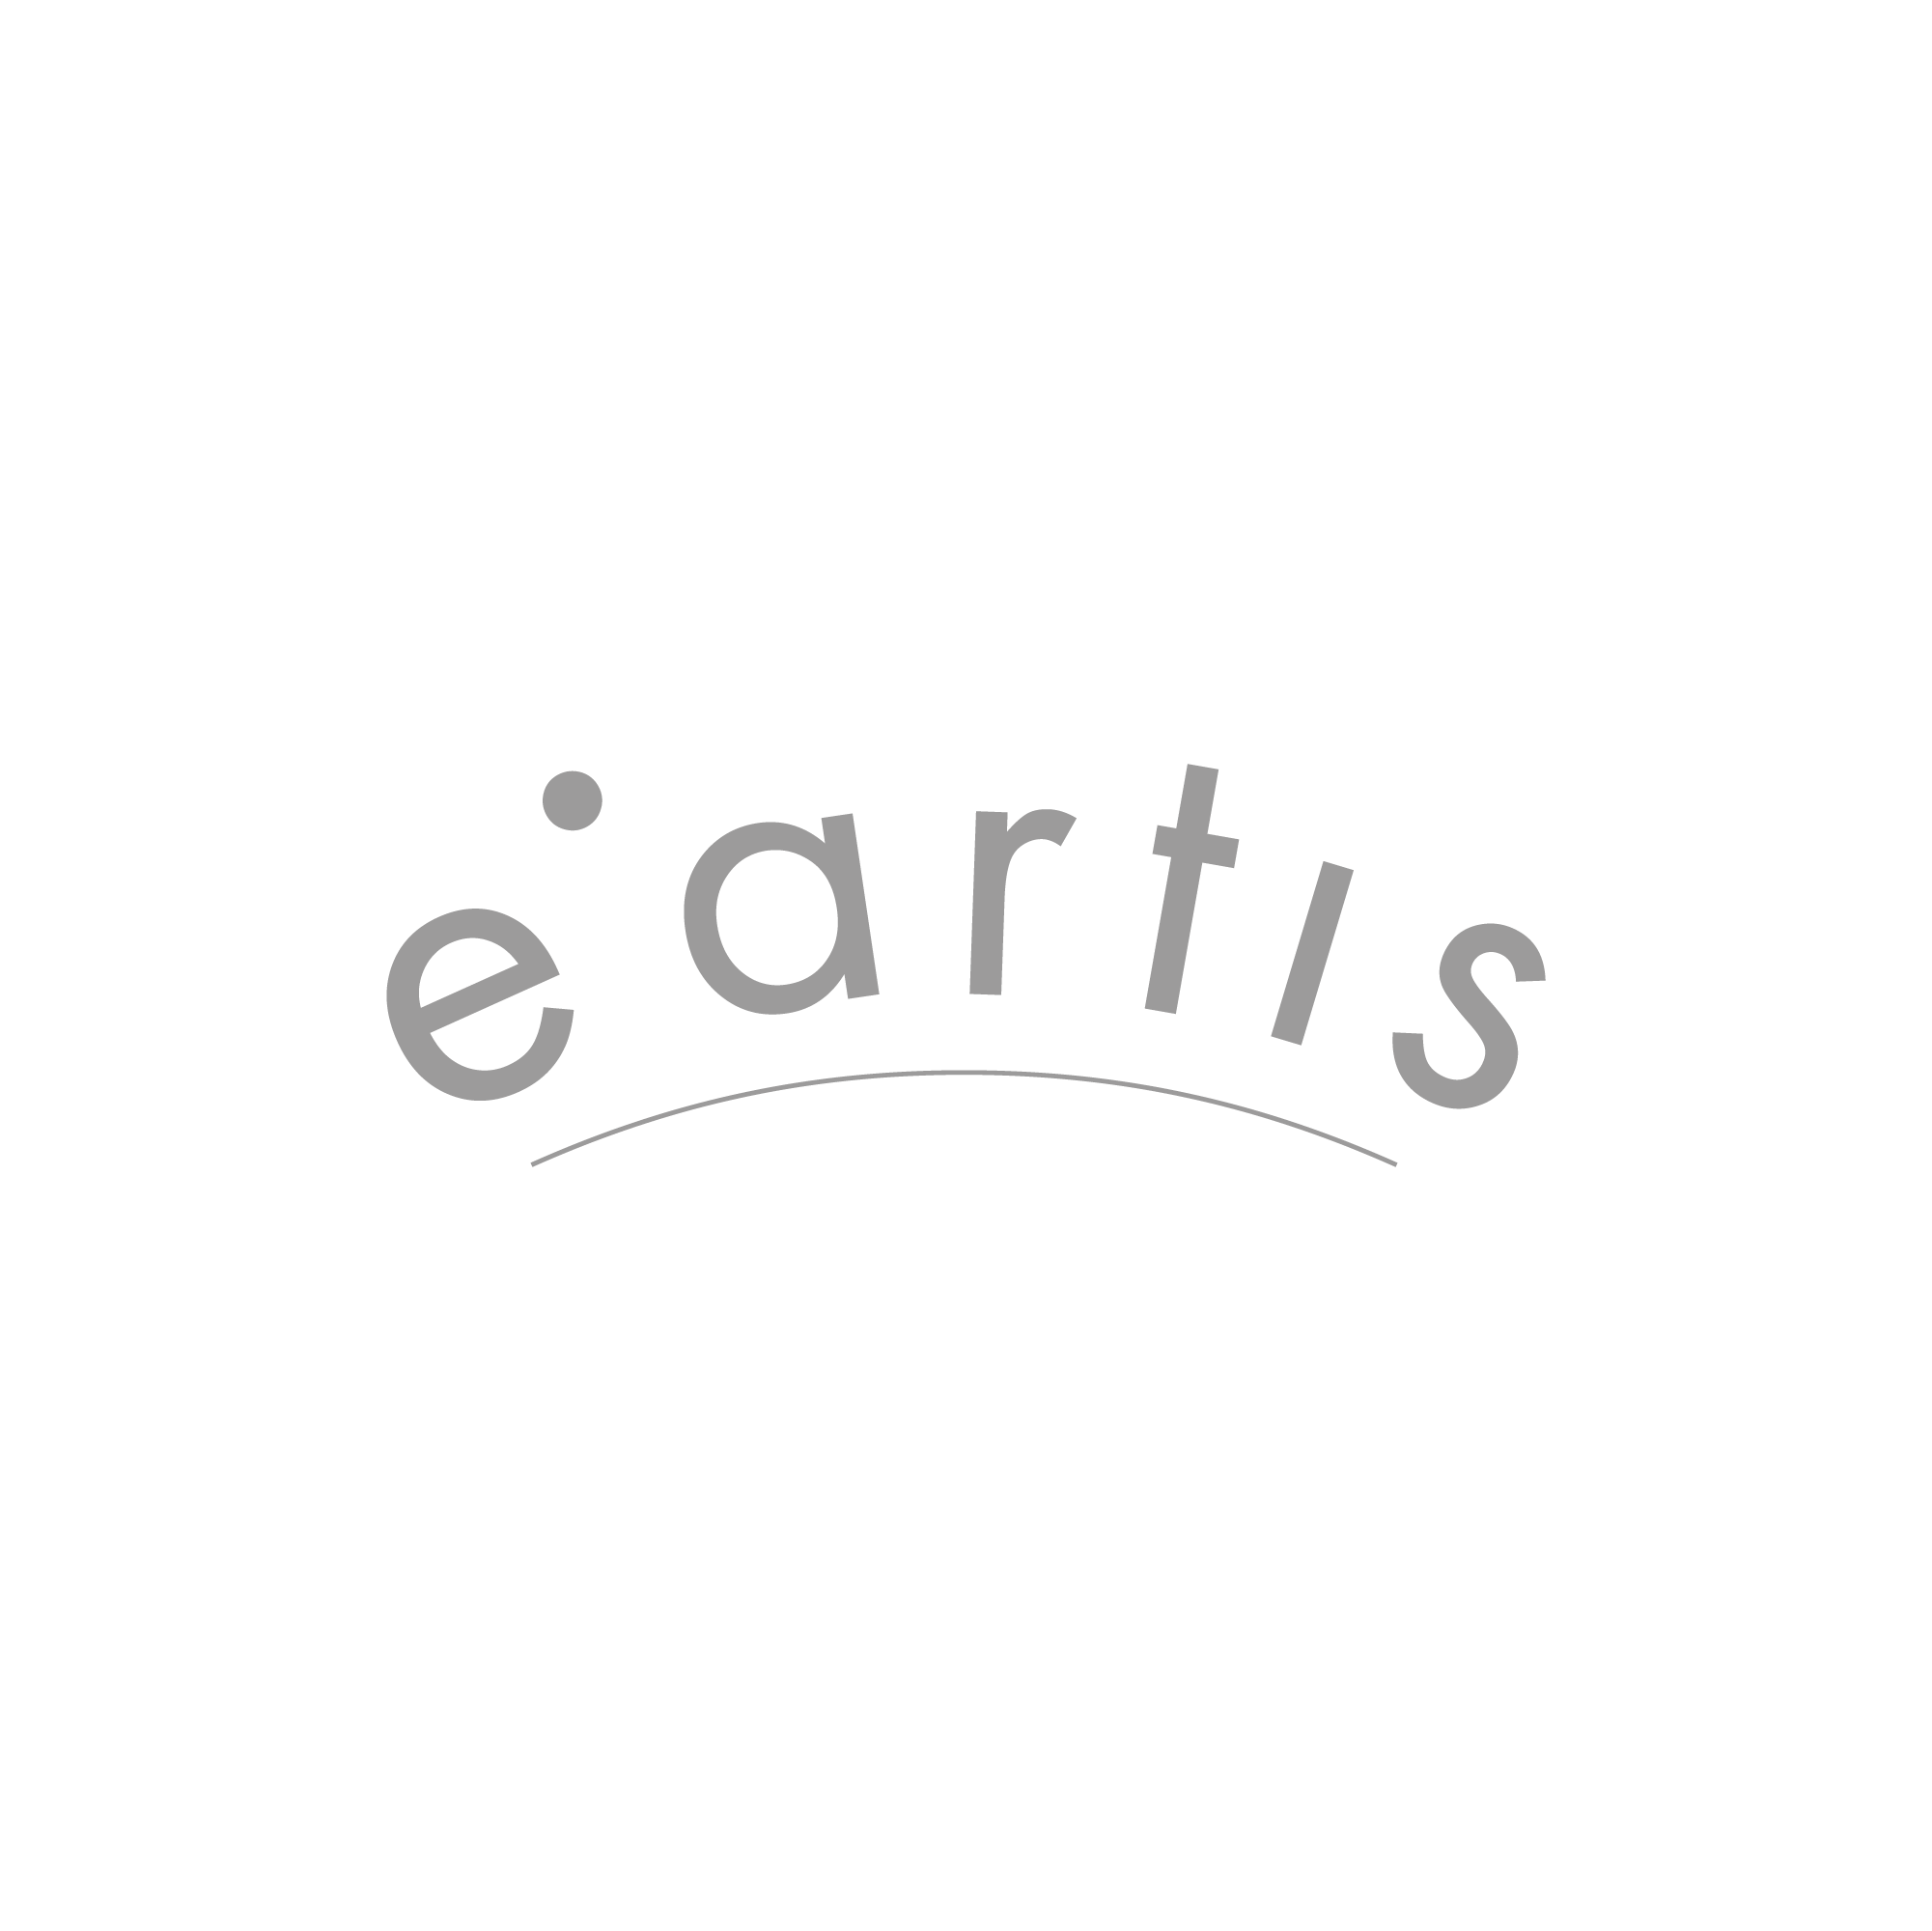 e.artis contemporary